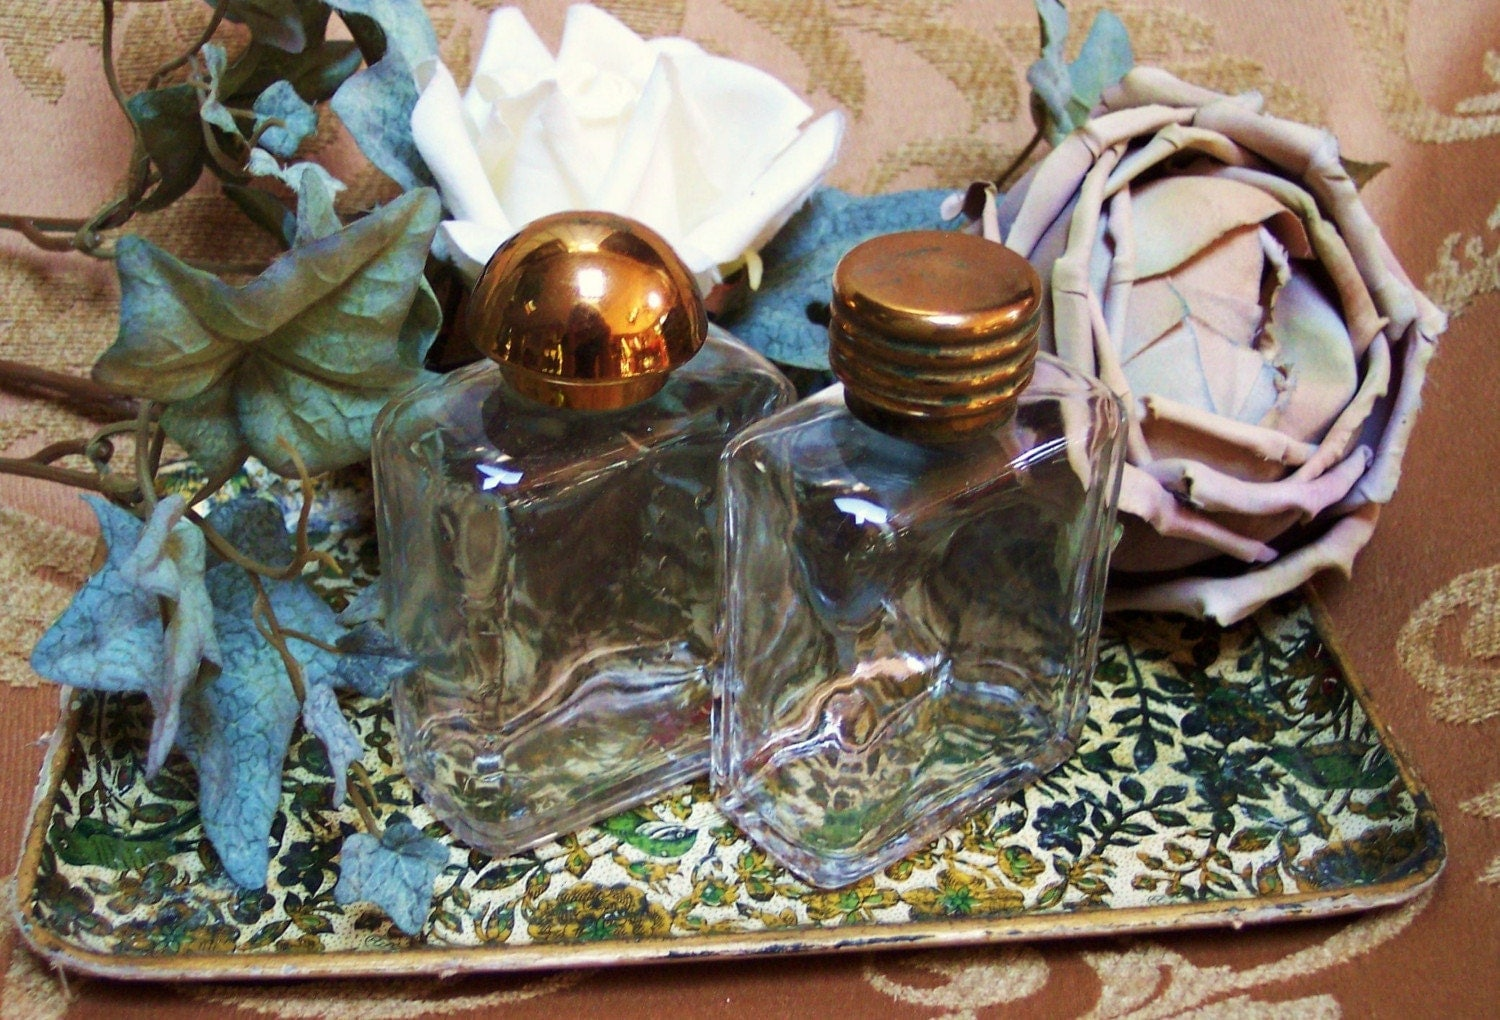 VINTAGE TRAIN CASE GLASS TOILETRY BOTTLES-TRAVEL IN VINTAGE STYLE